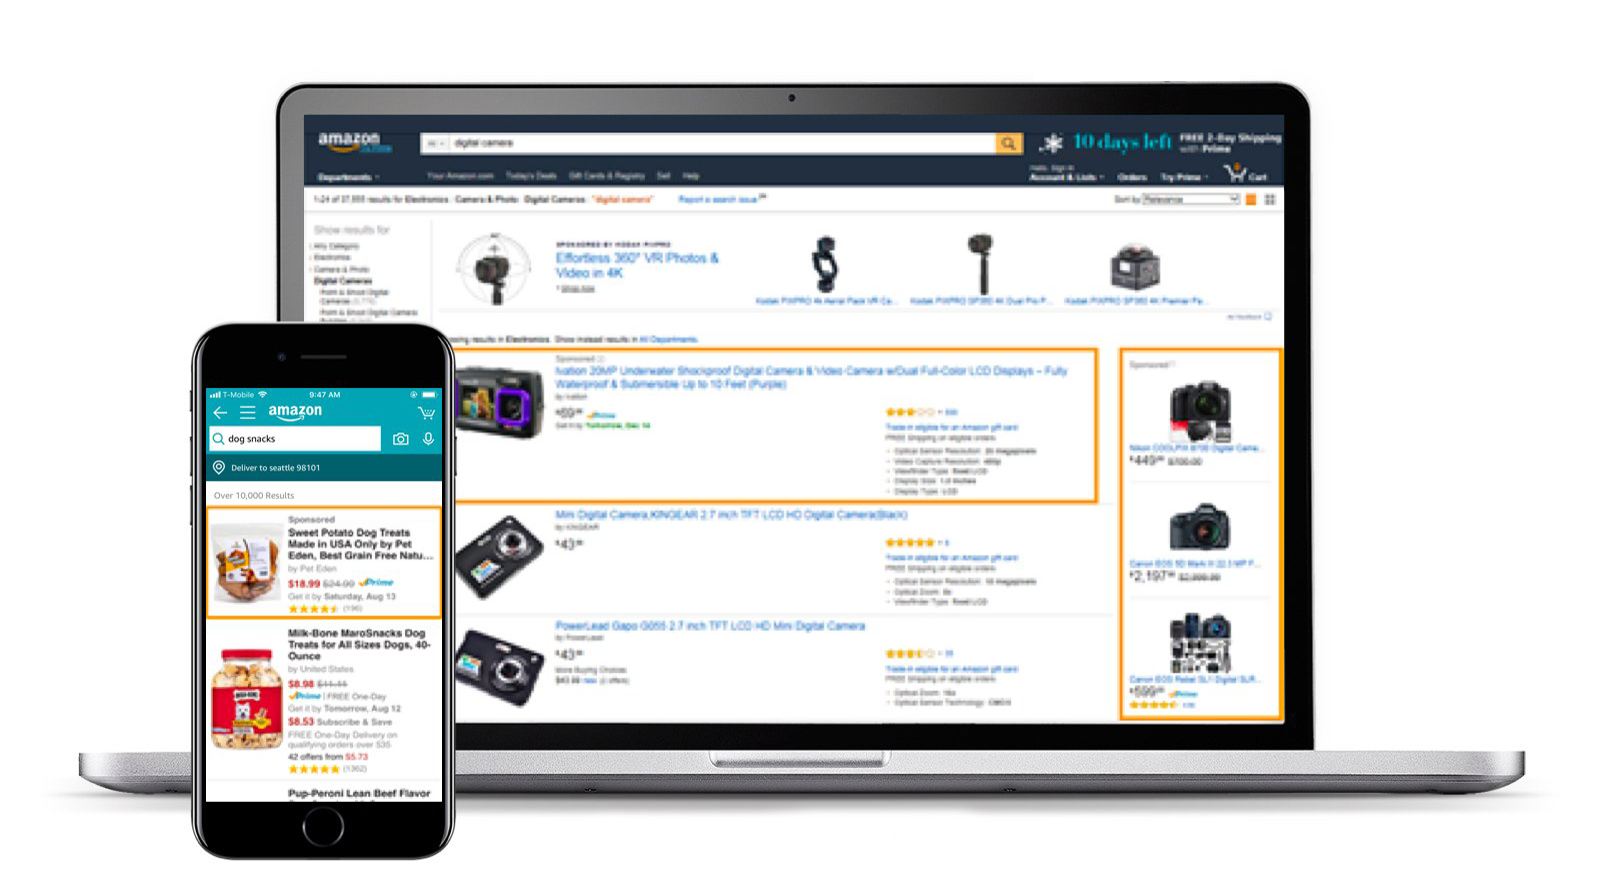 Examples of Sponsored Products ads on desktop and mobile